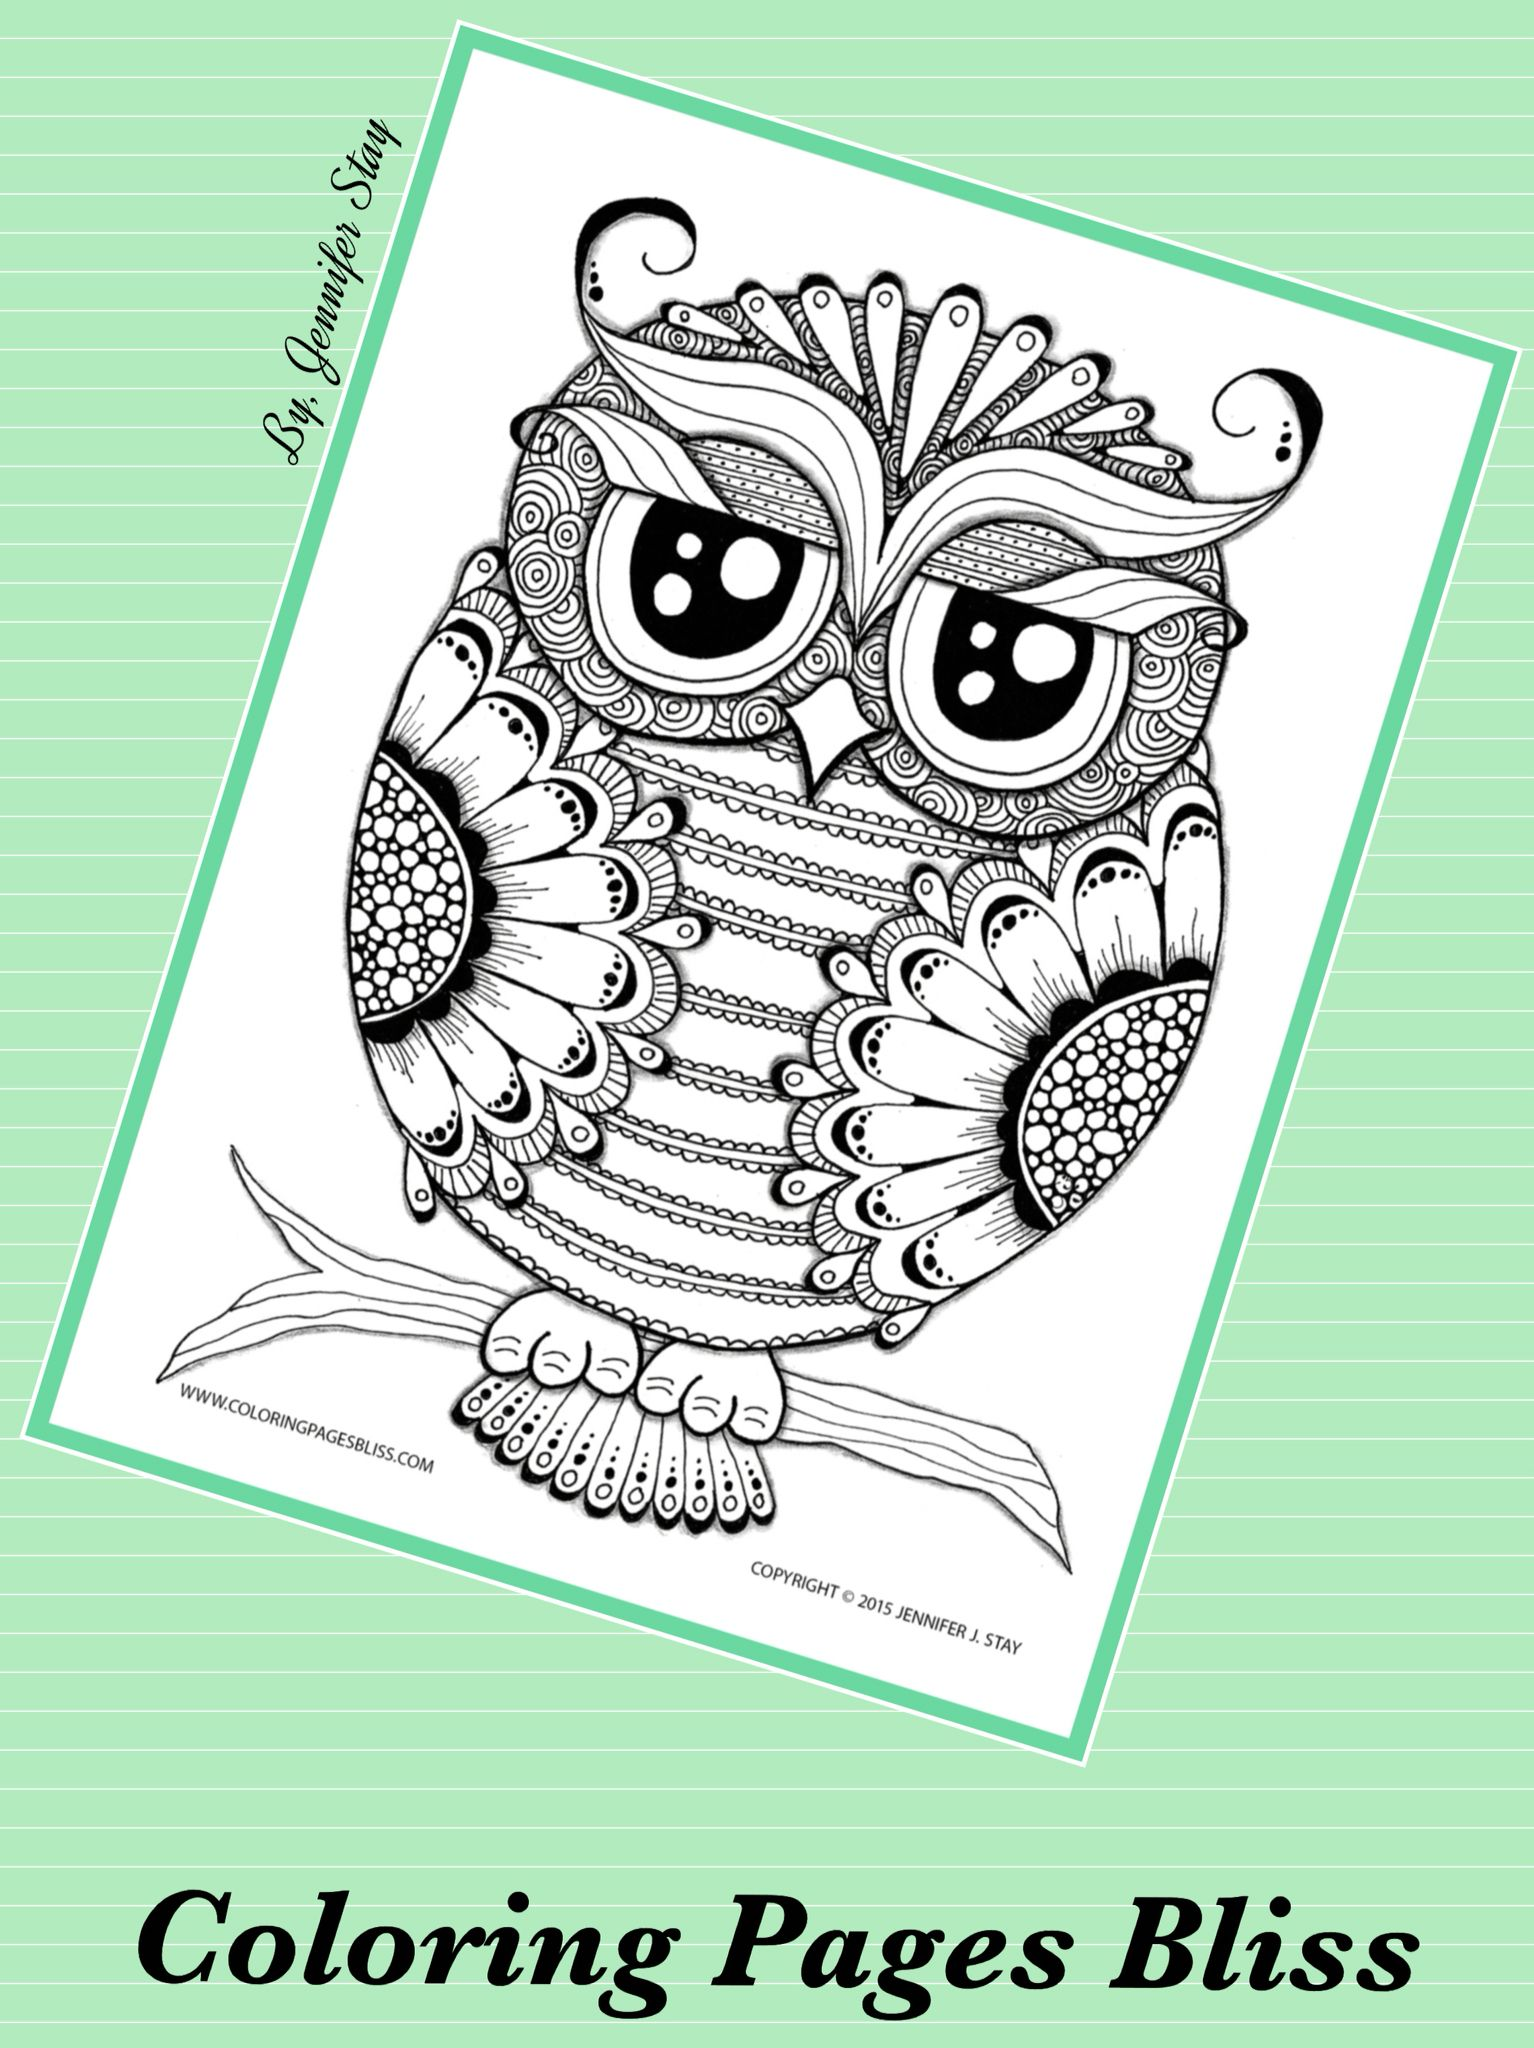 New Bird Inspired Coloring Pages | Bliss, Owl and Adult coloring